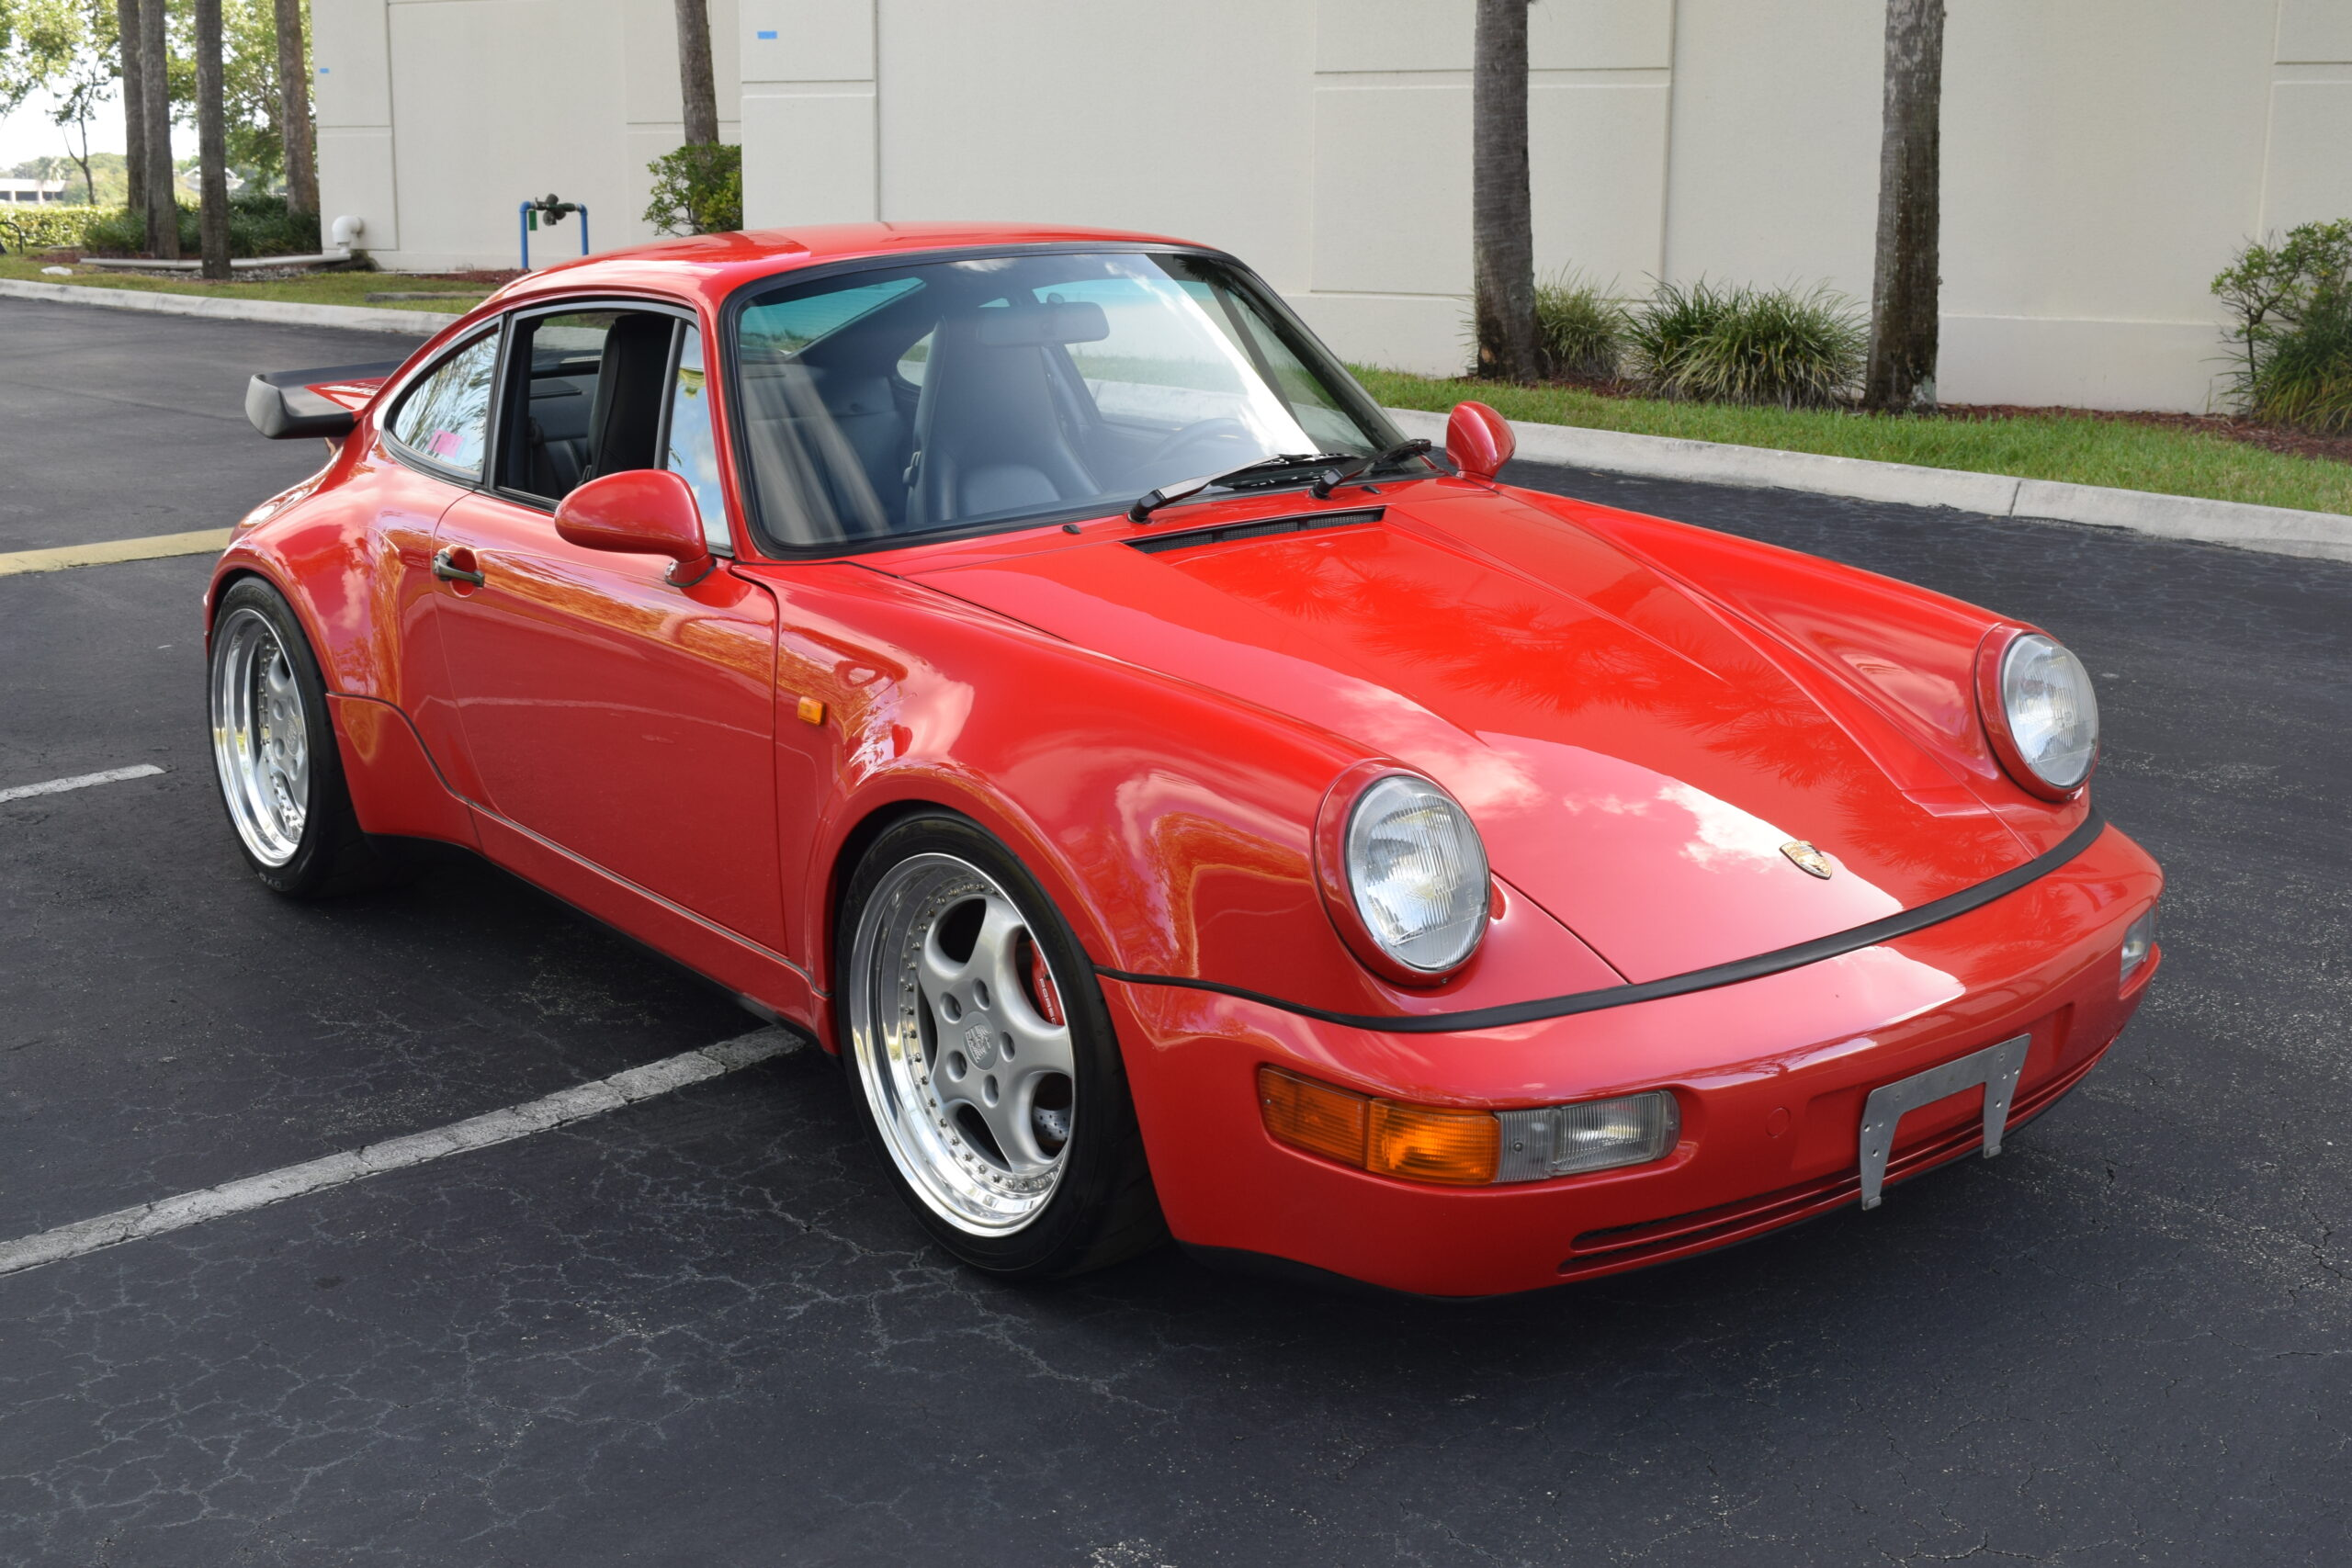 1993 Porsche 911 Turbo 964 28K Miles-Sunroof Delete-Big Brakes-3.8L Twin Plug – Limited Slip Differential